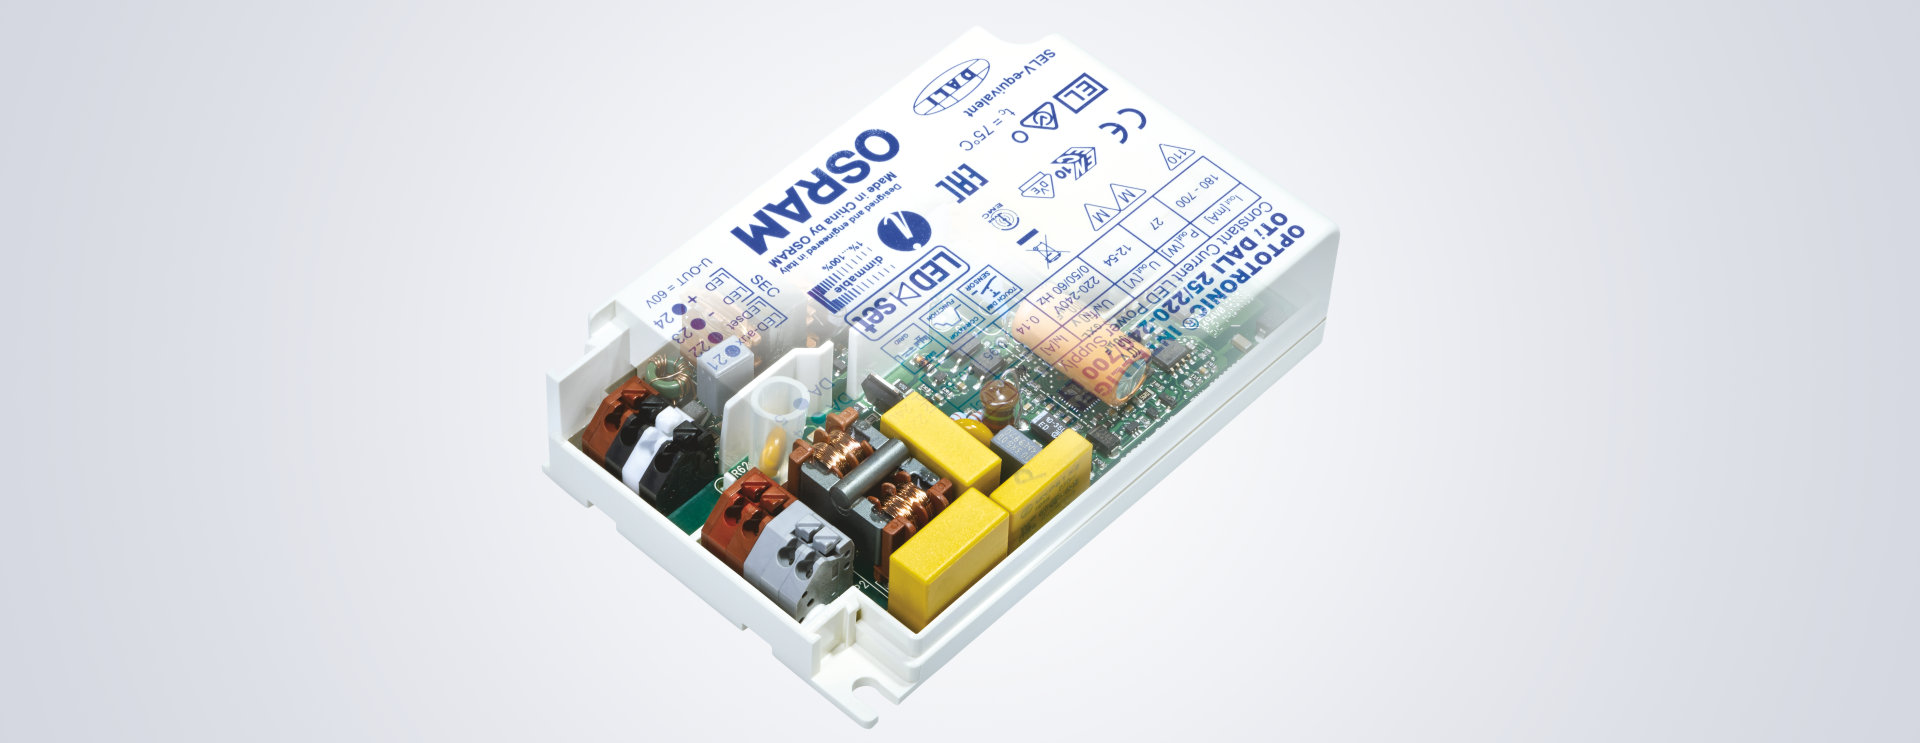 The OSRAM Range Of Constant Current LED Drivers